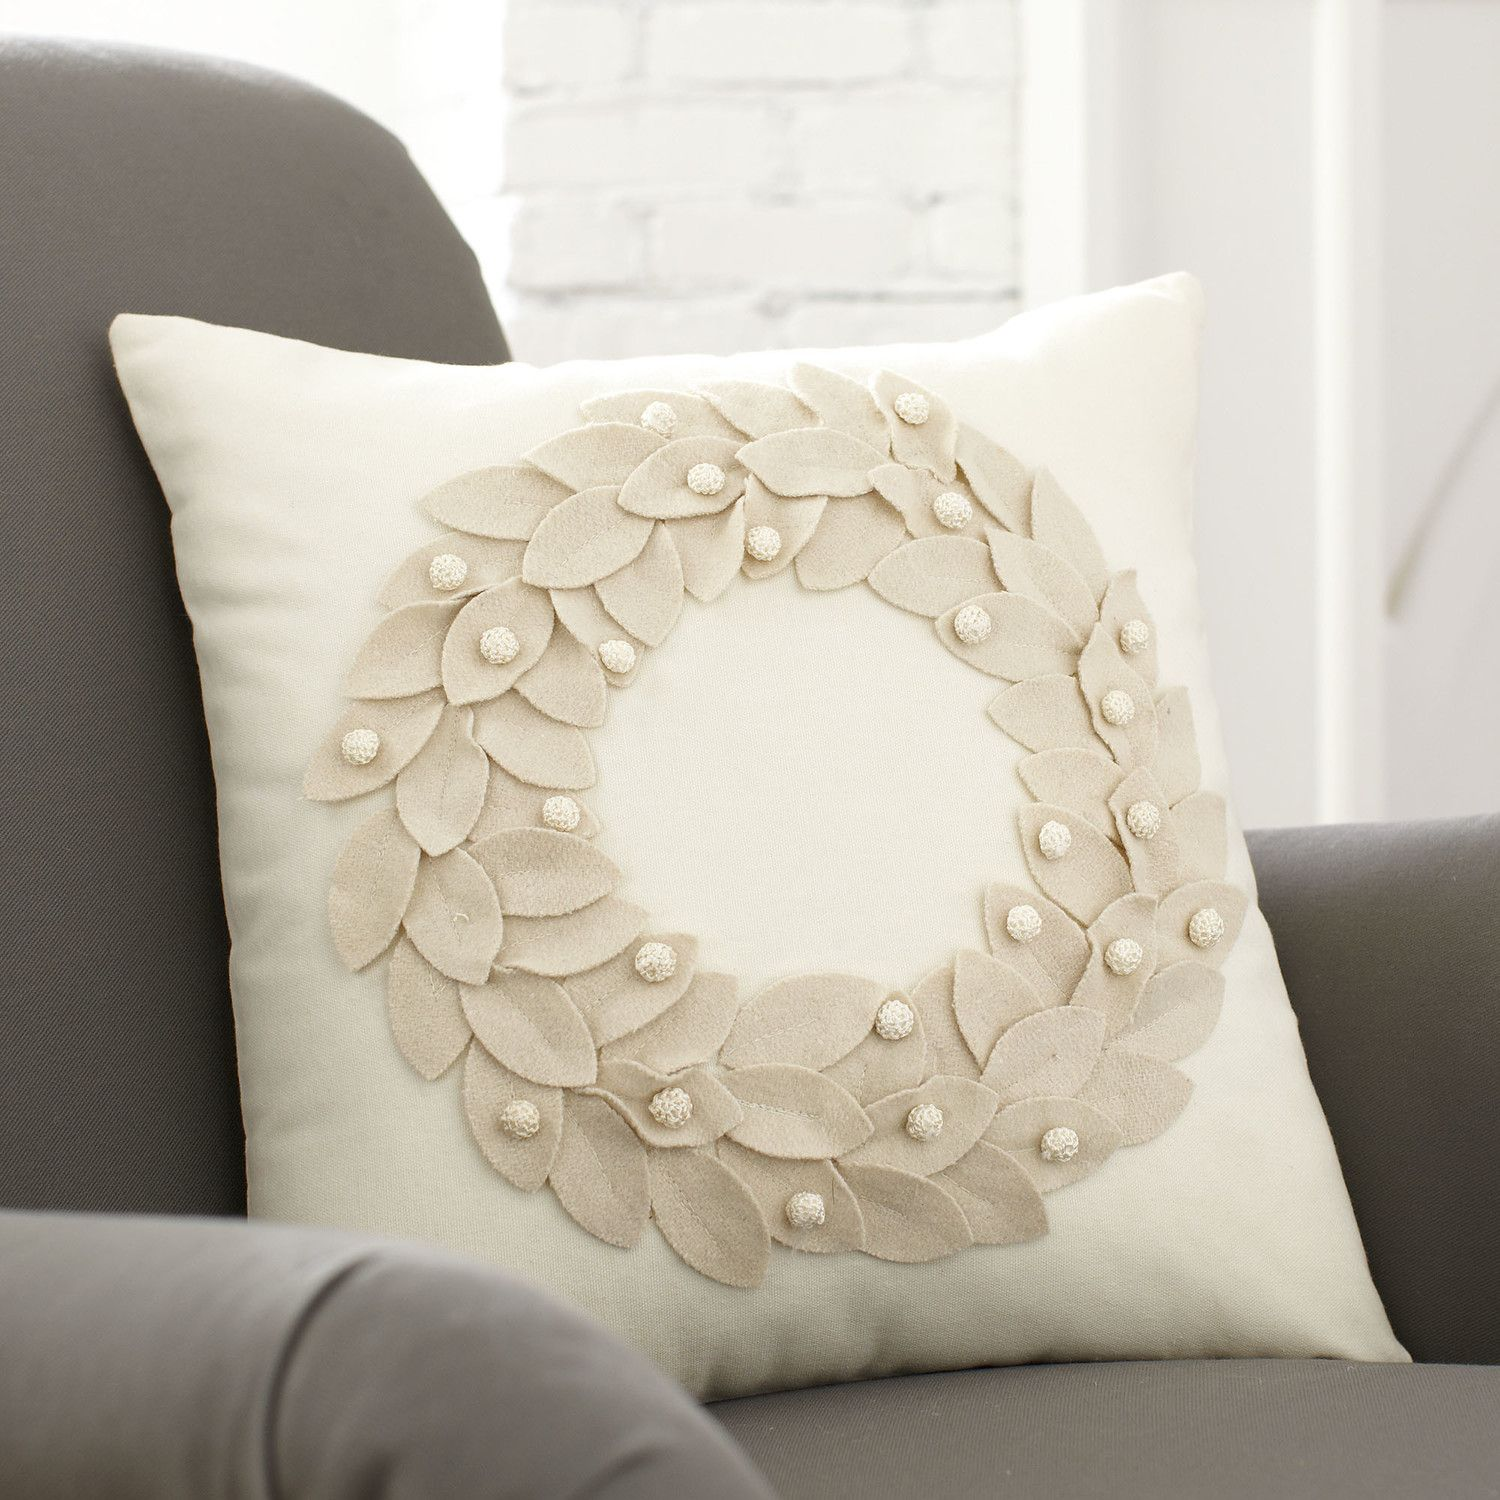 The Vienna Wreath Pillow Cover at Birch Lane. & Birch Lane Vienna Wreath Pillow Cover | Christmas | Pinterest ... pillowsntoast.com